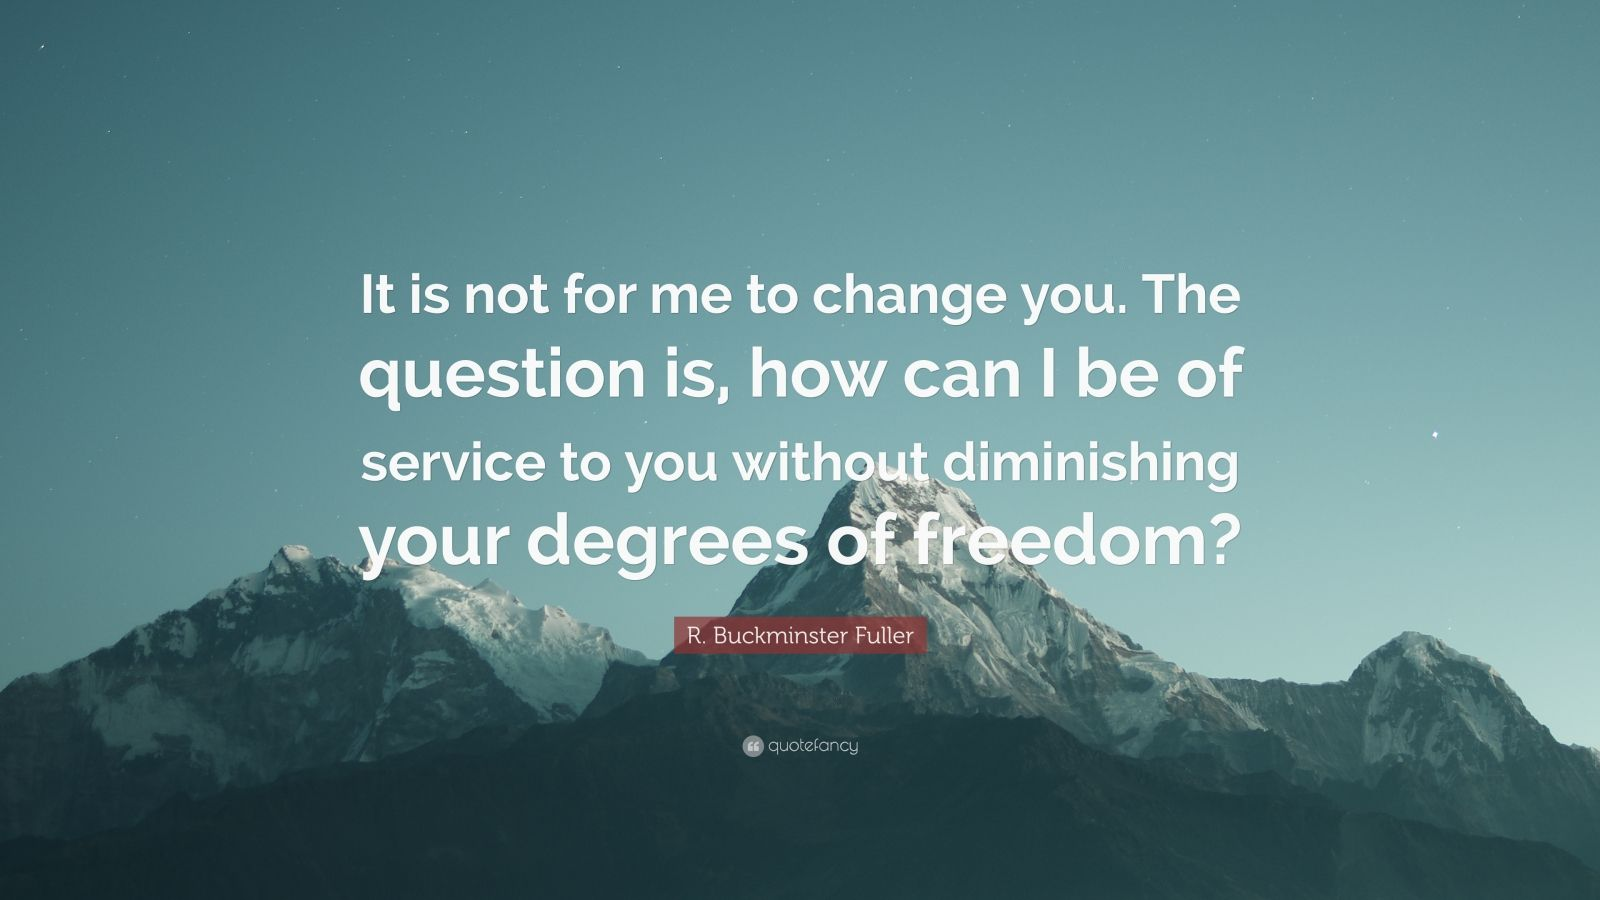 "R. Buckminster Fuller Quote: ""It is not for me to change you. The question is, how can I be of service to you without diminishing your degrees of freedom?"""